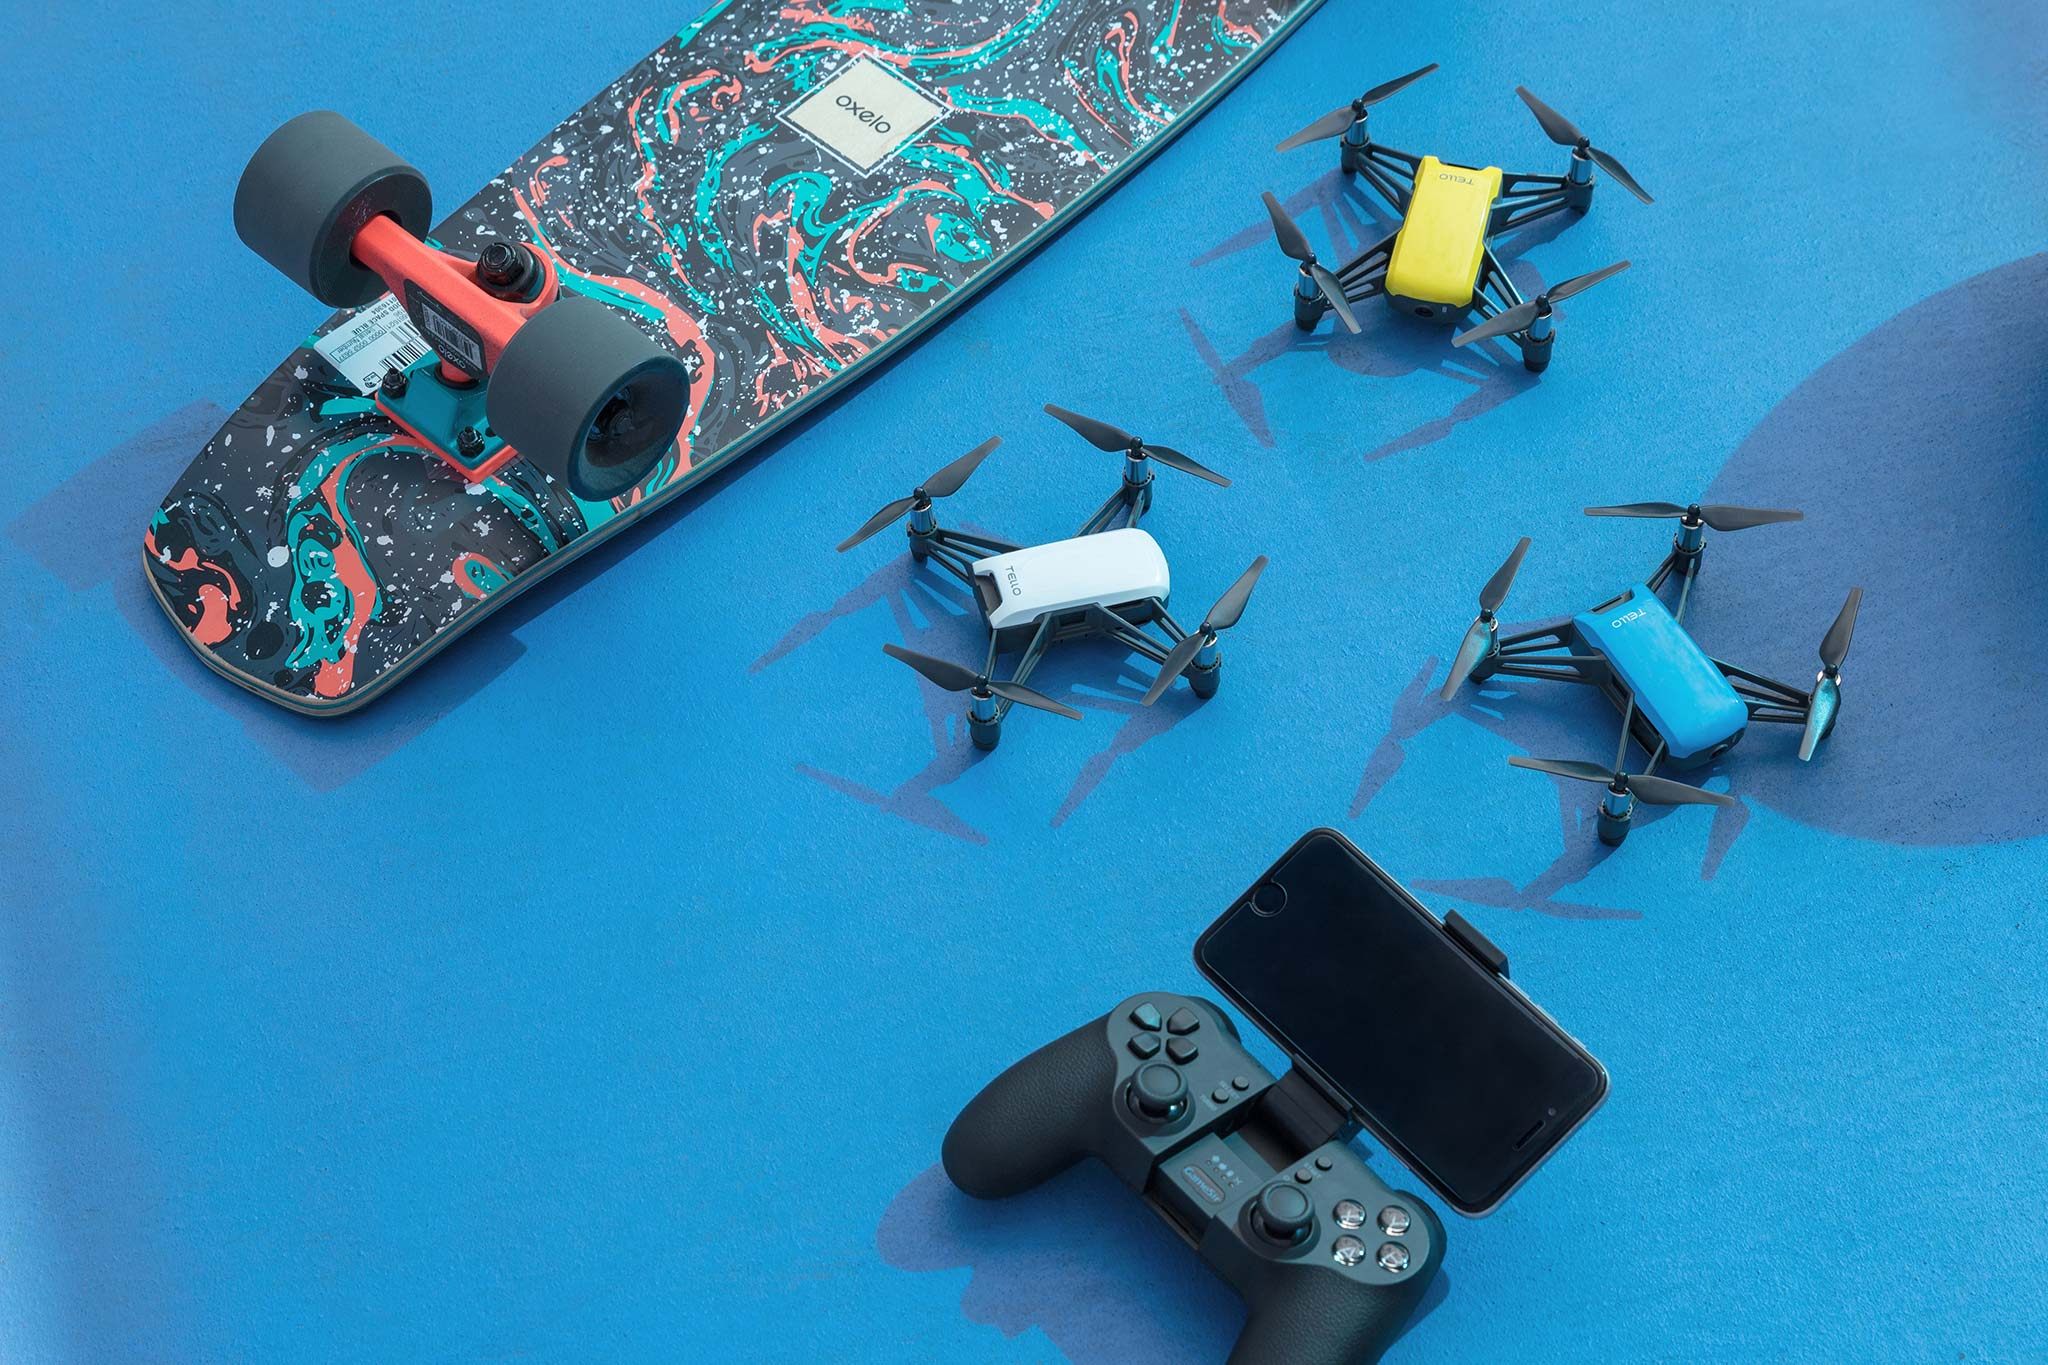 DJI Tello Is Really Very Small As Of Today Its The Smallest Drone Even Spark Looks Big When You Compare Them Just 98 925 41